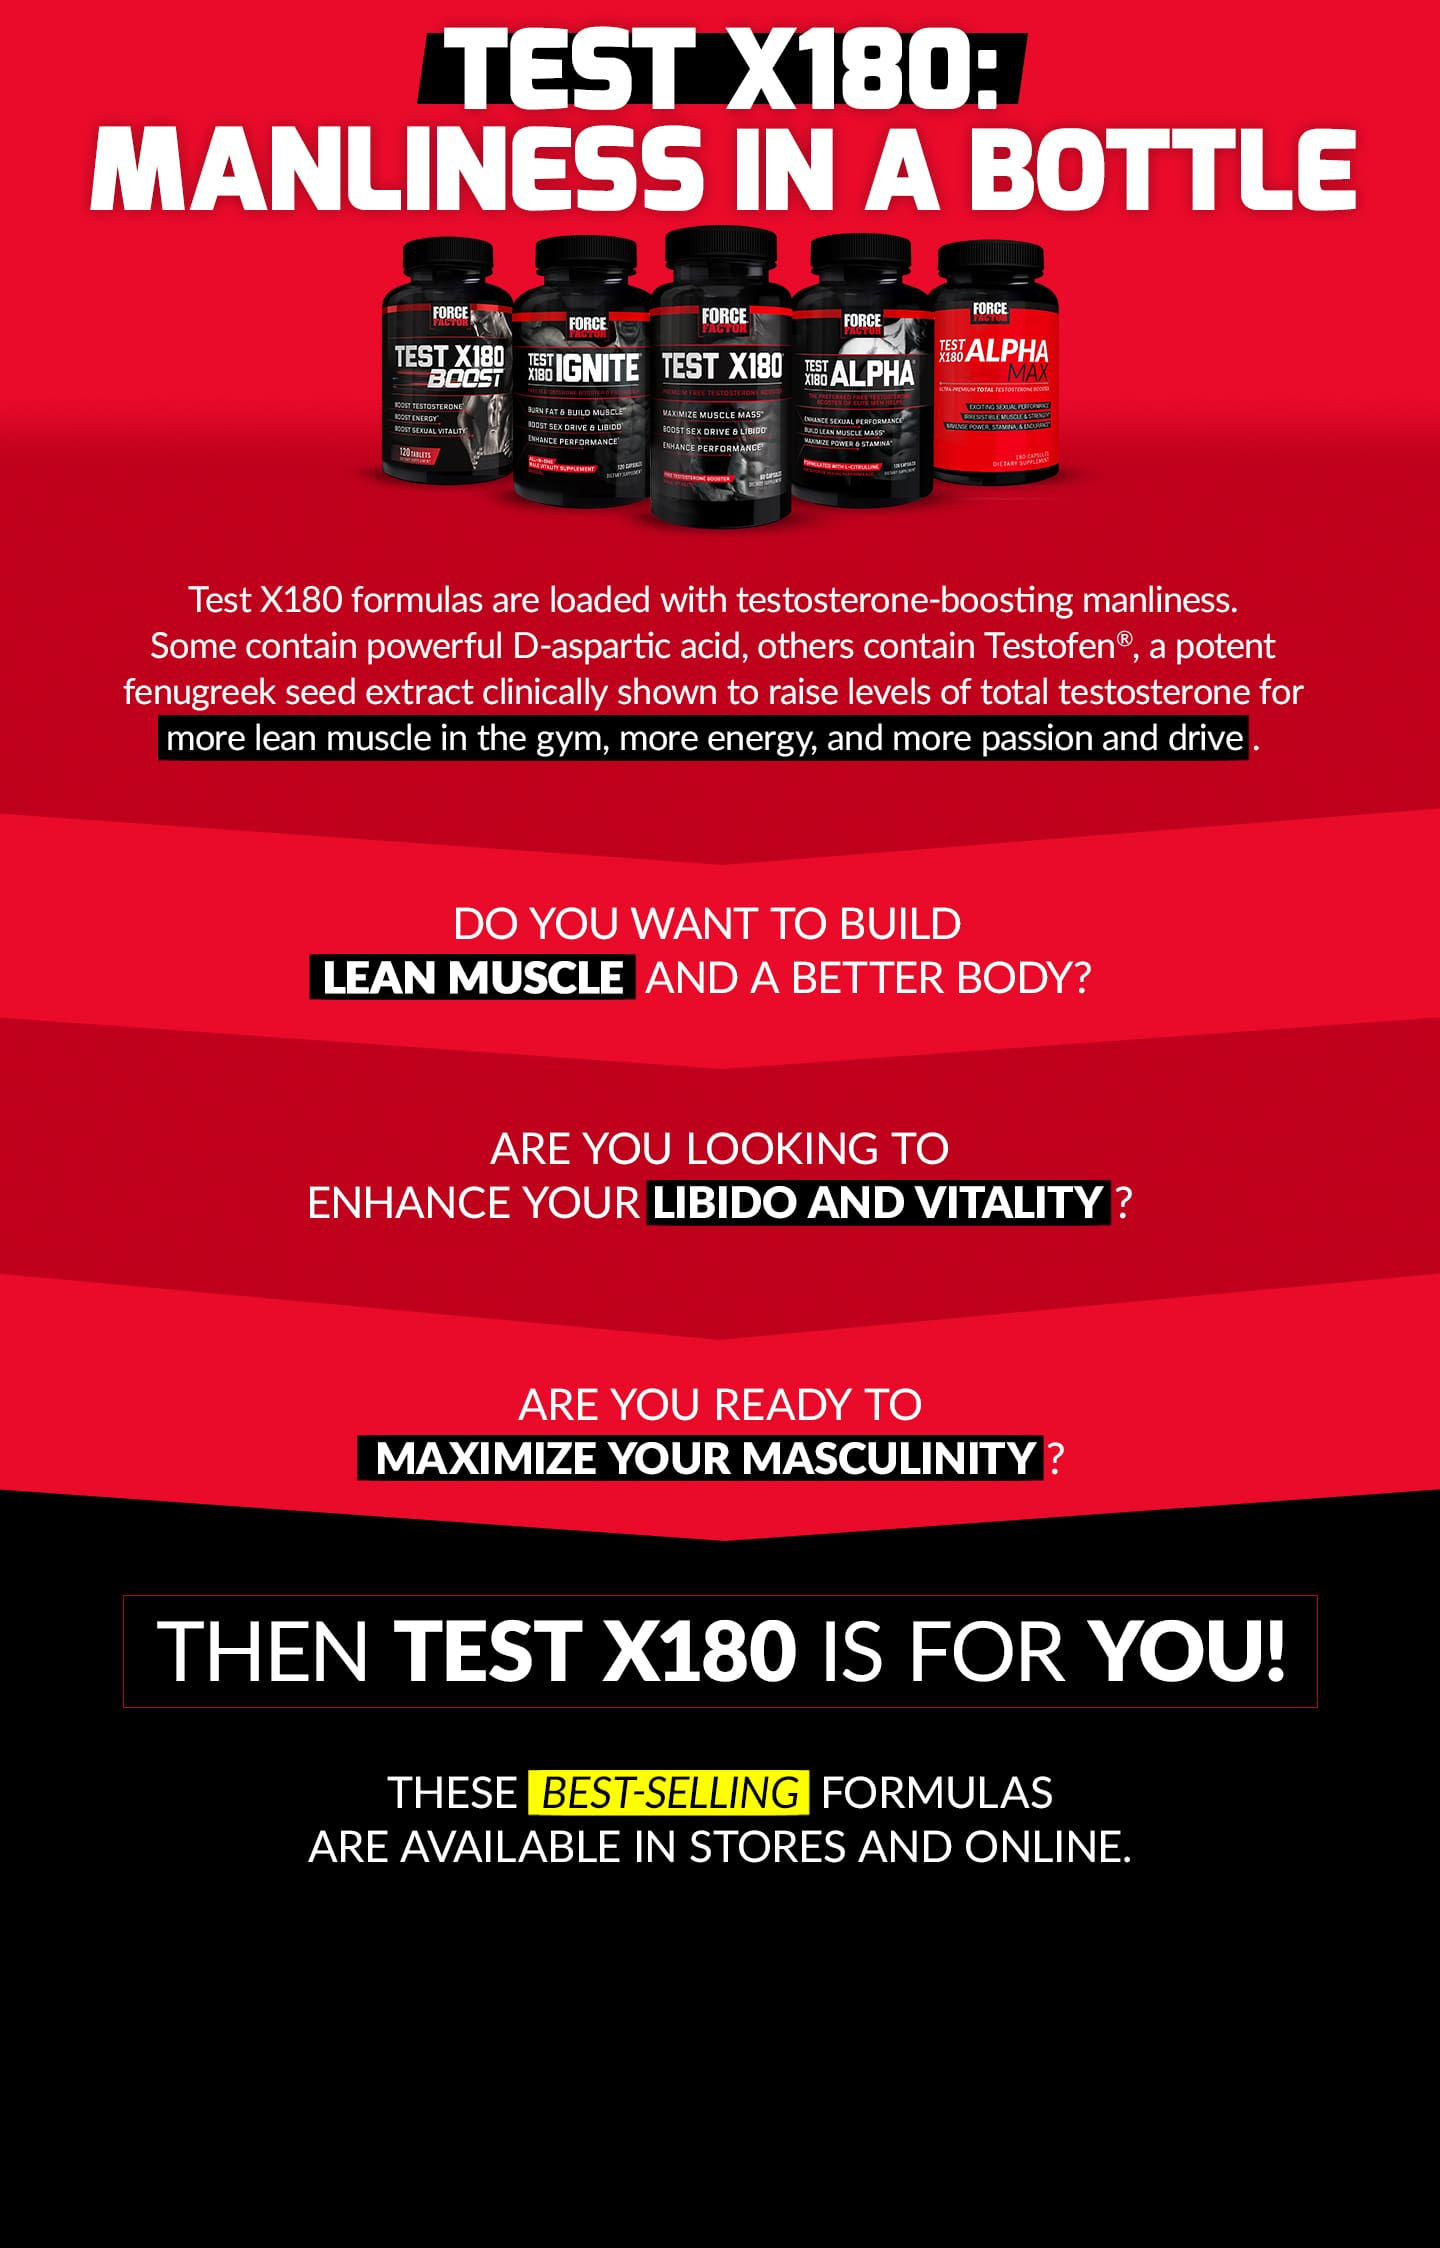 TEST X180: MANLINESS IN A BOTTLE. Test X180 formulas are loaded with testosterone-boosting manliness. Some contain powerful D-aspartic acid, others contain Testofen®, a potent fenugreek seed extract clinically shown to raise levels of total testosterone for more lean muscle in the gym, more energy, and more passion and drive. DO YOU WANT TO BUILD LEAN MUSCLE AND A BETTER BODY? ARE YOU LOOKING TO ENHANCE YOUR LIBIDO AND VITALITY? ARE YOU READY TO MAXIMIZE YOUR MASCULINITY? THEN TEST X180 IS FOR YOU! THESE BEST-SELLING FORMULAS ARE AVAILABLE IN STORES AND ONLINE.